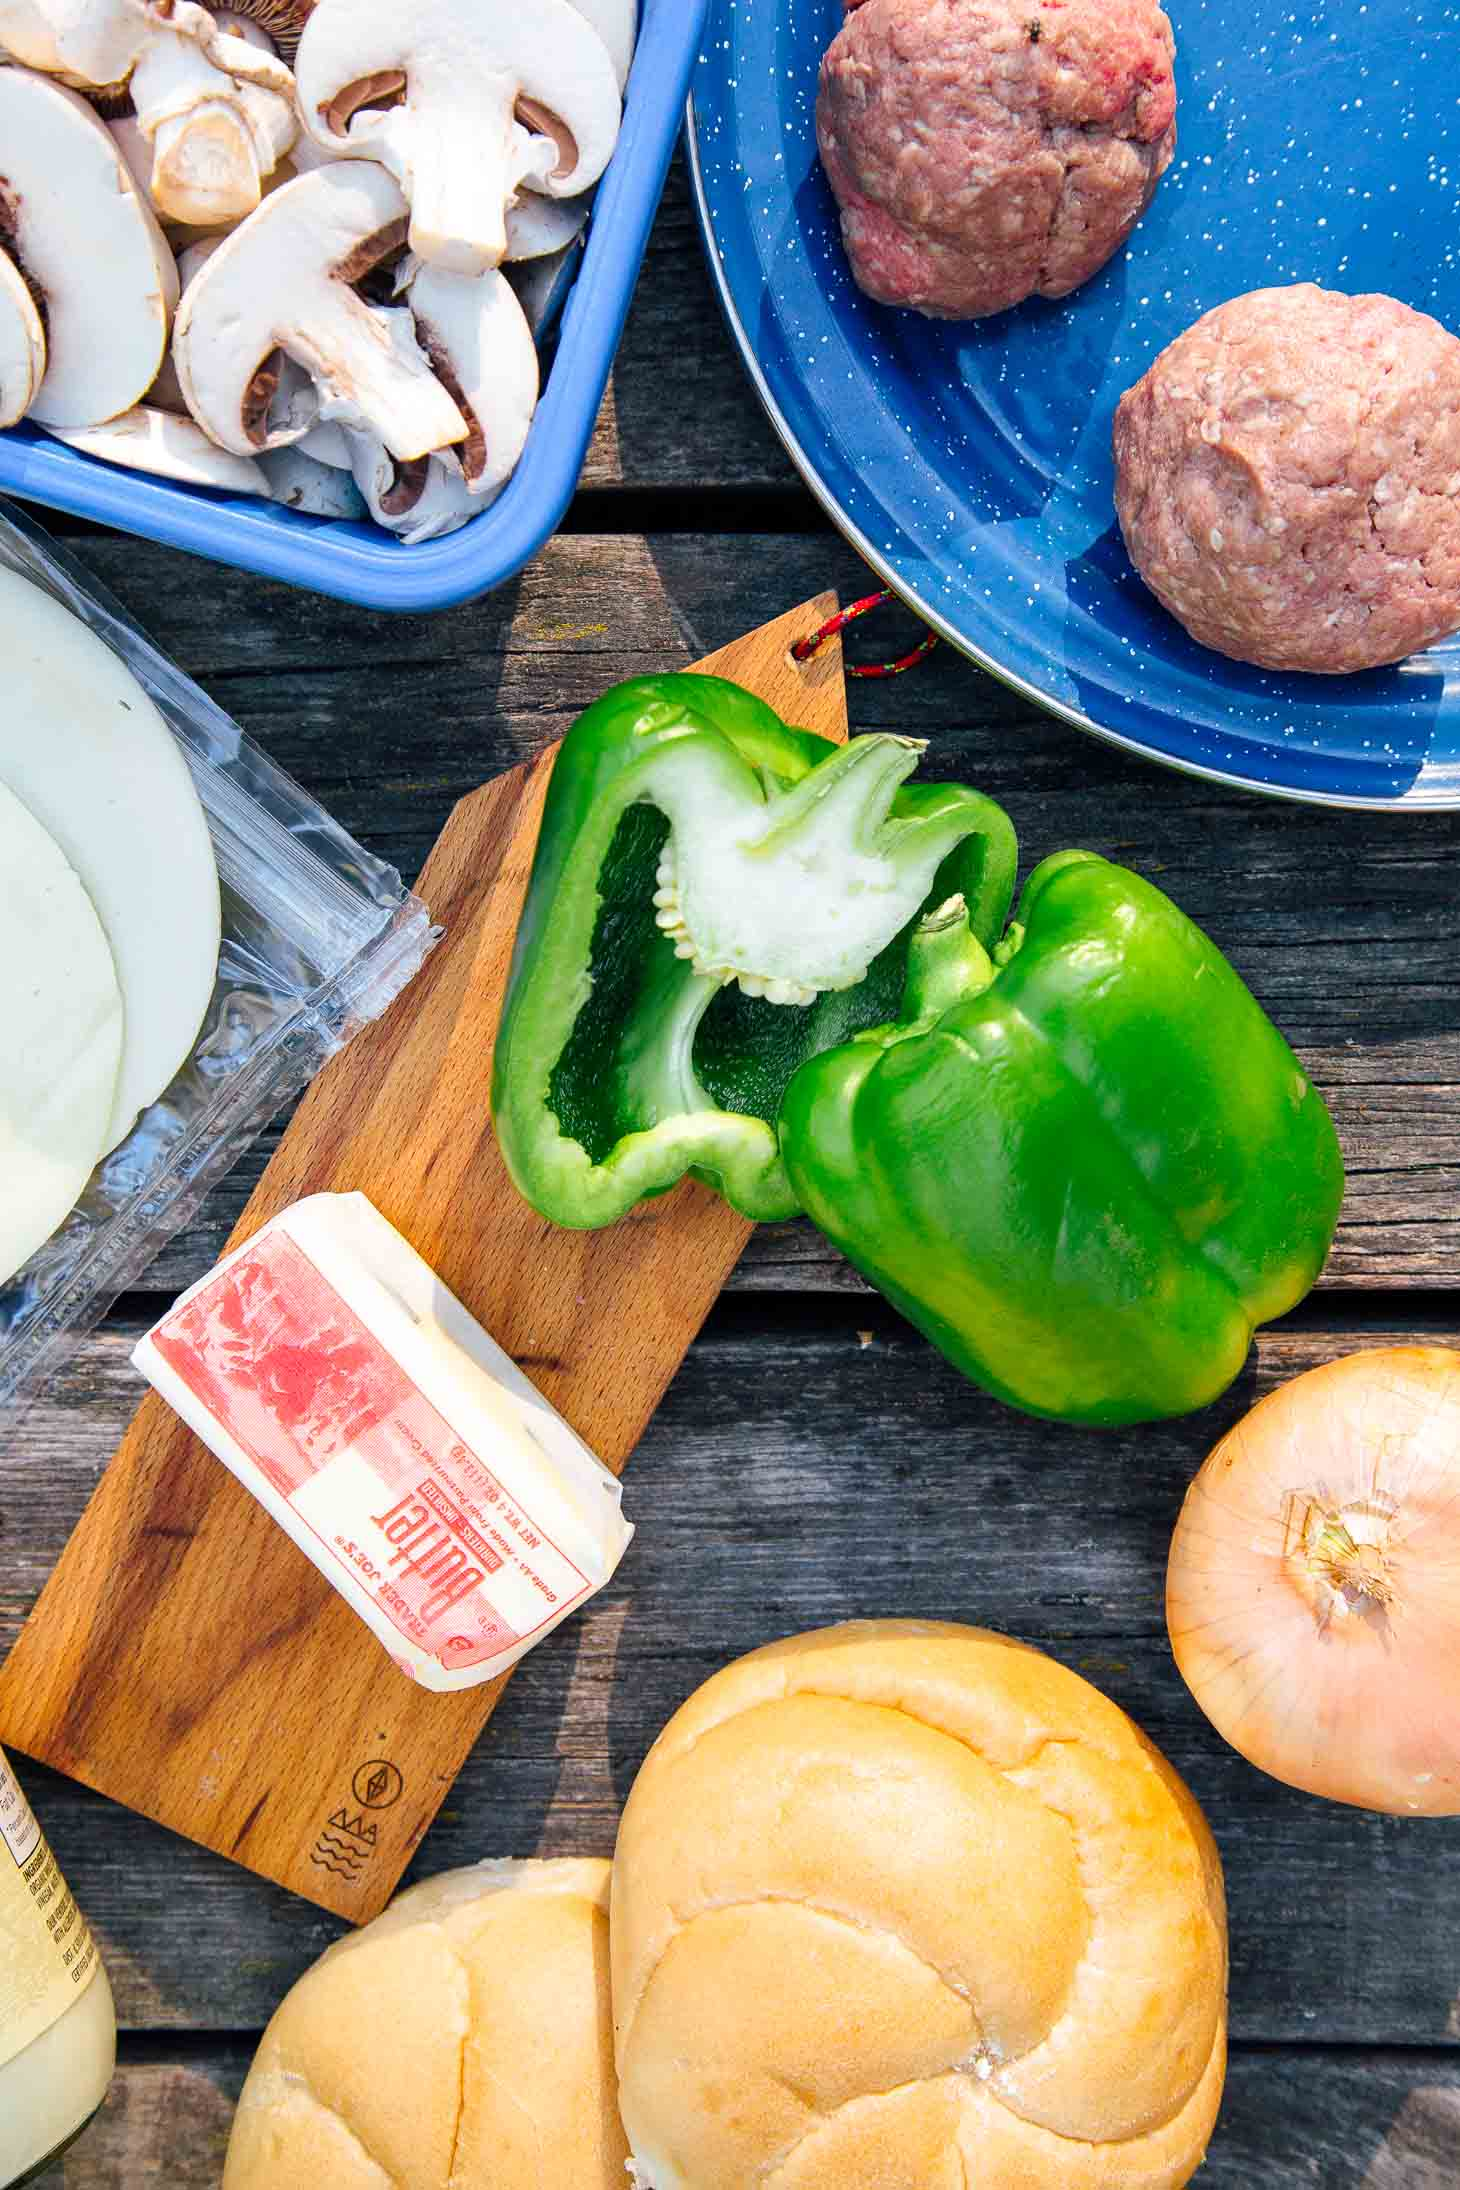 Ingredients on a table including green bell peppers, onion, buns and burger meat.